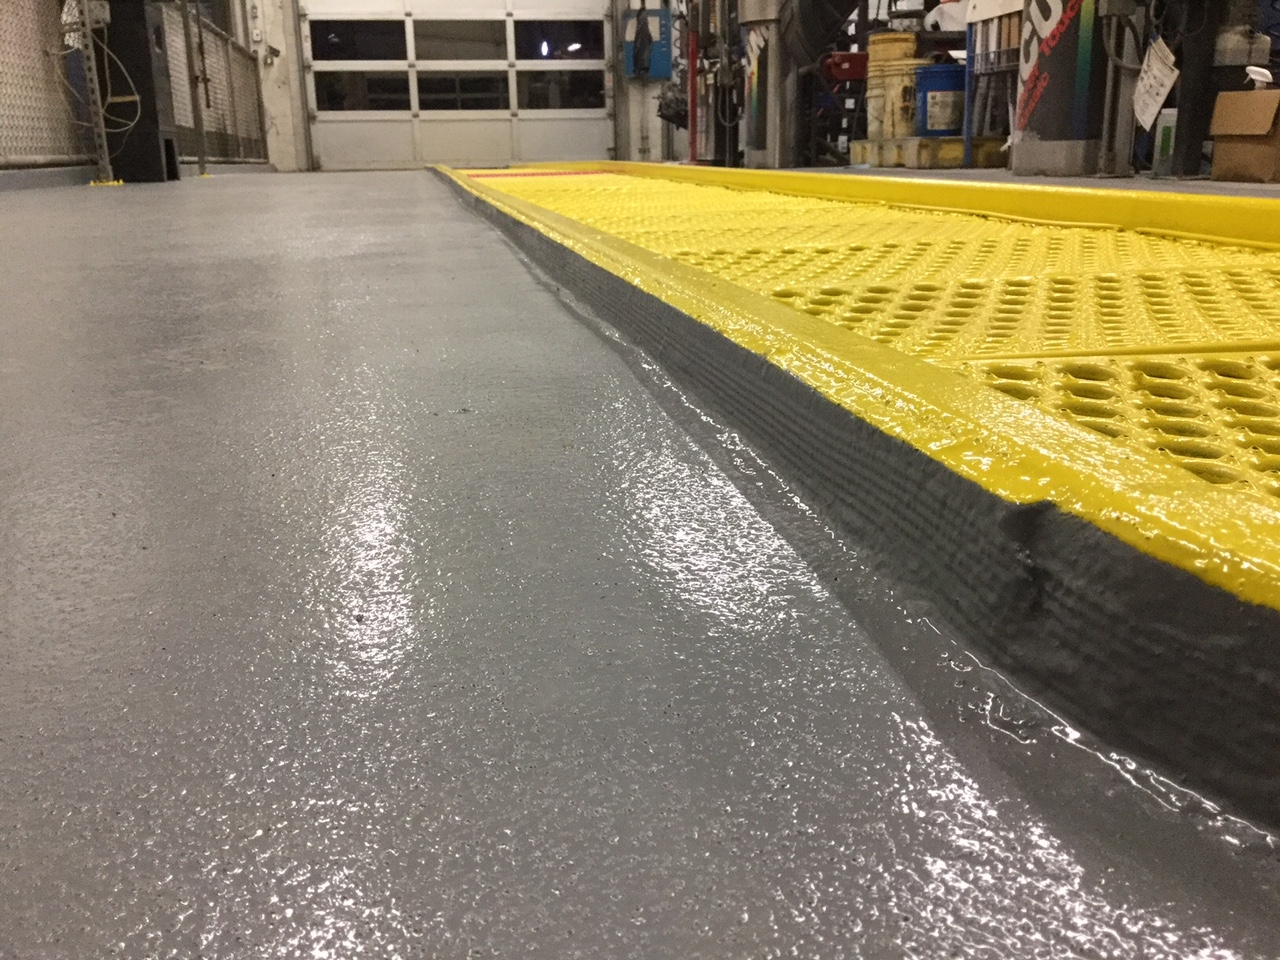 Final system- restored concrete and a protective system for future protection